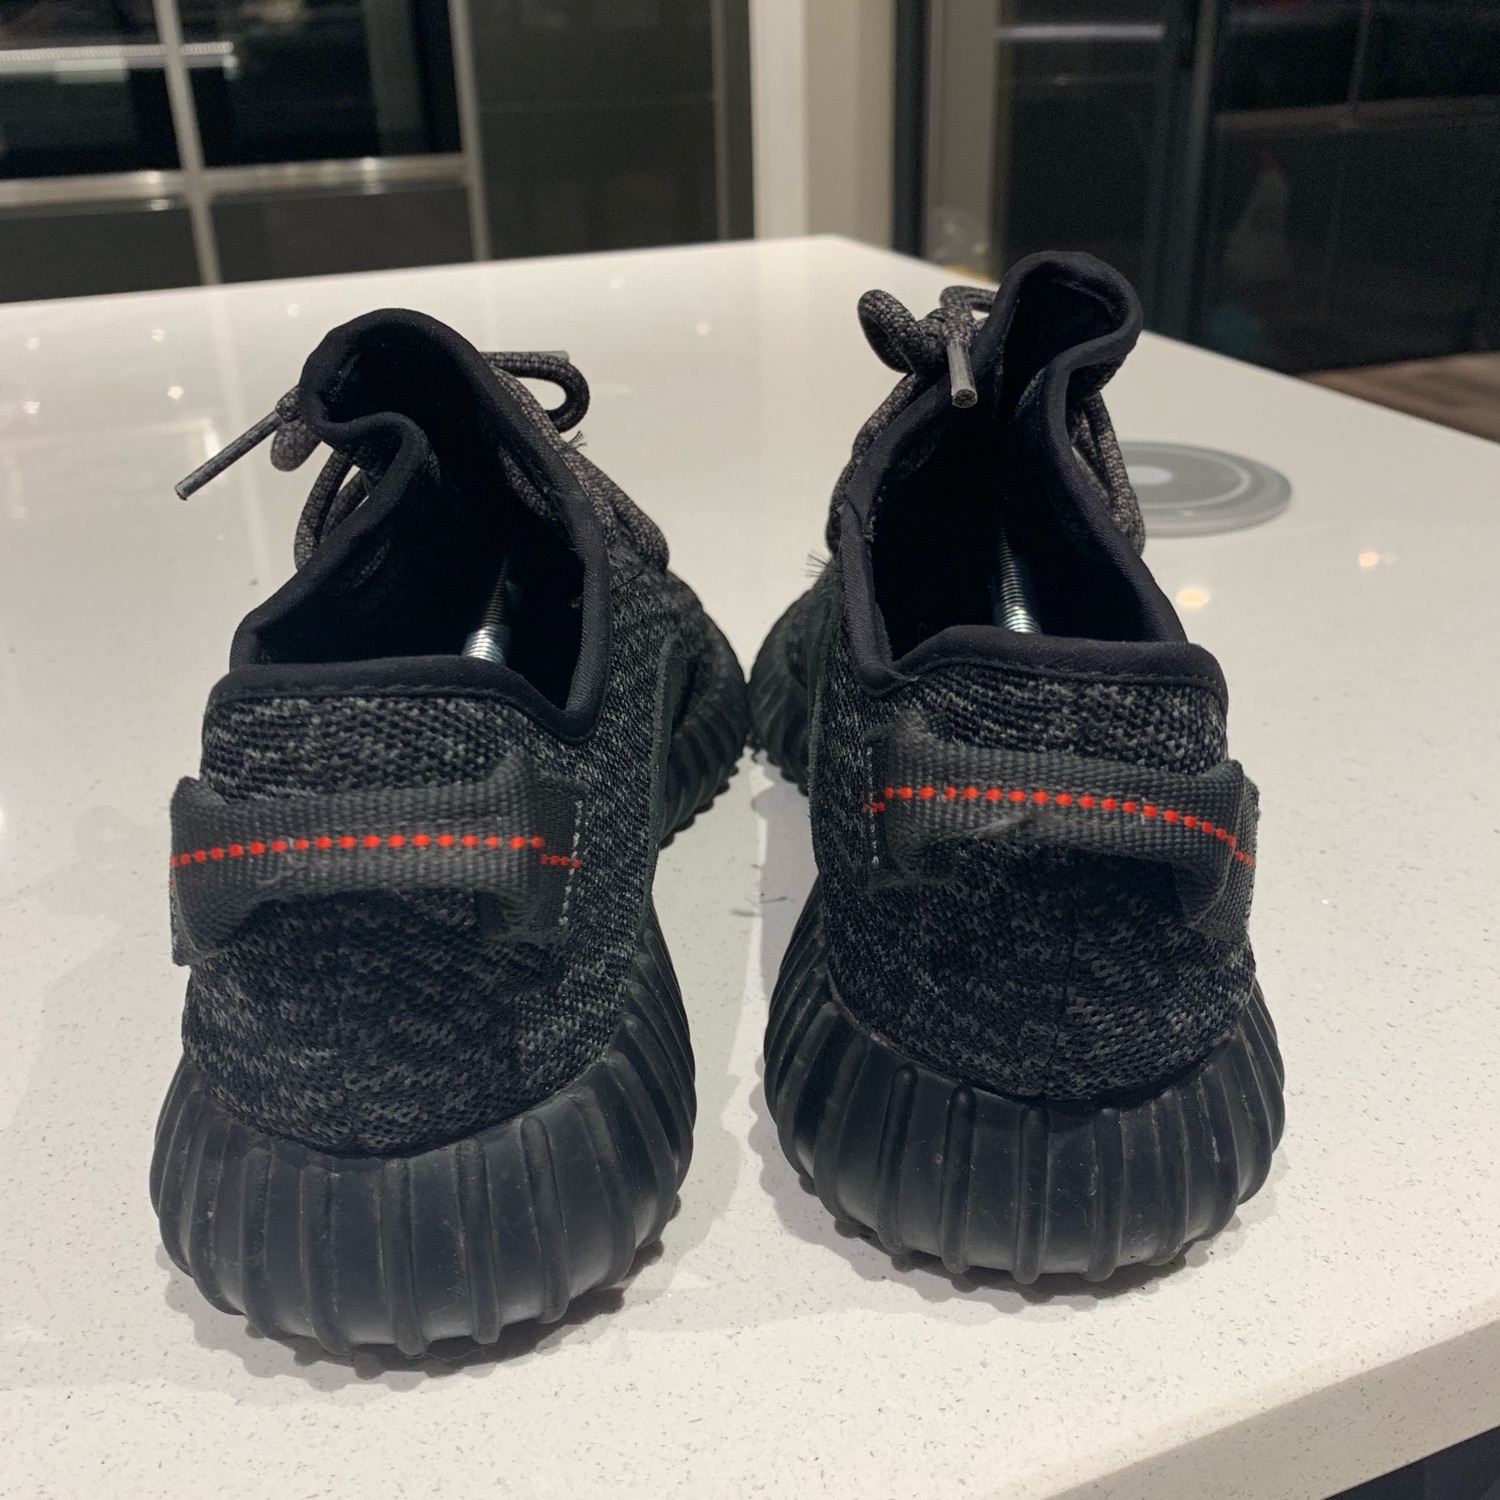 Yeezy Boost 350 V1 Pirate Black Us 10.5 Uk 10